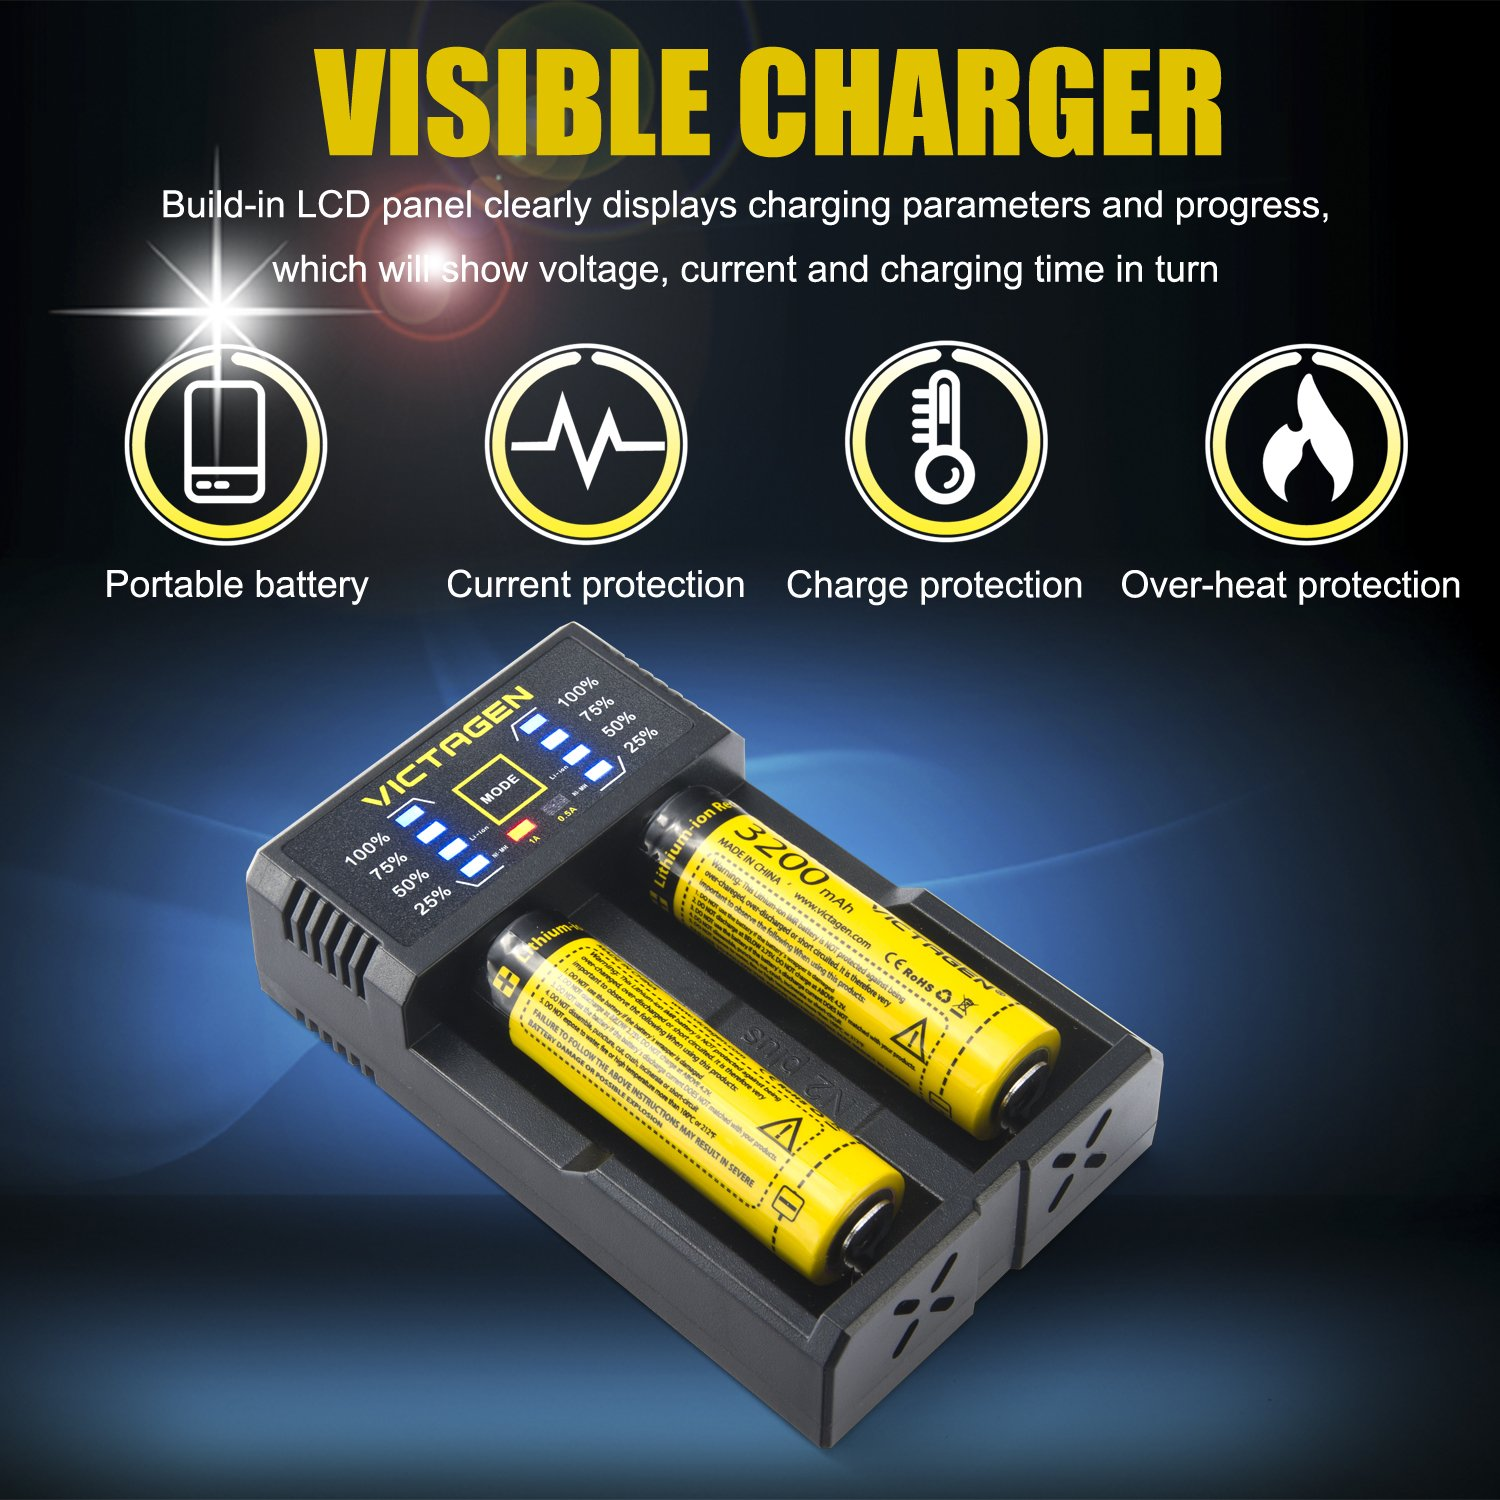 Victagen 18650 Lithium Battery (2 Packs) and Battery Charger, Universal Smart Charger For Rechargeable Batteries Li-ion 26650 18650/IMR/LiFePO4/Ni-MH/Ni-Cd 22650 18490 18350 17670 17500 16340 AA AAA C by Victagen (Image #8)